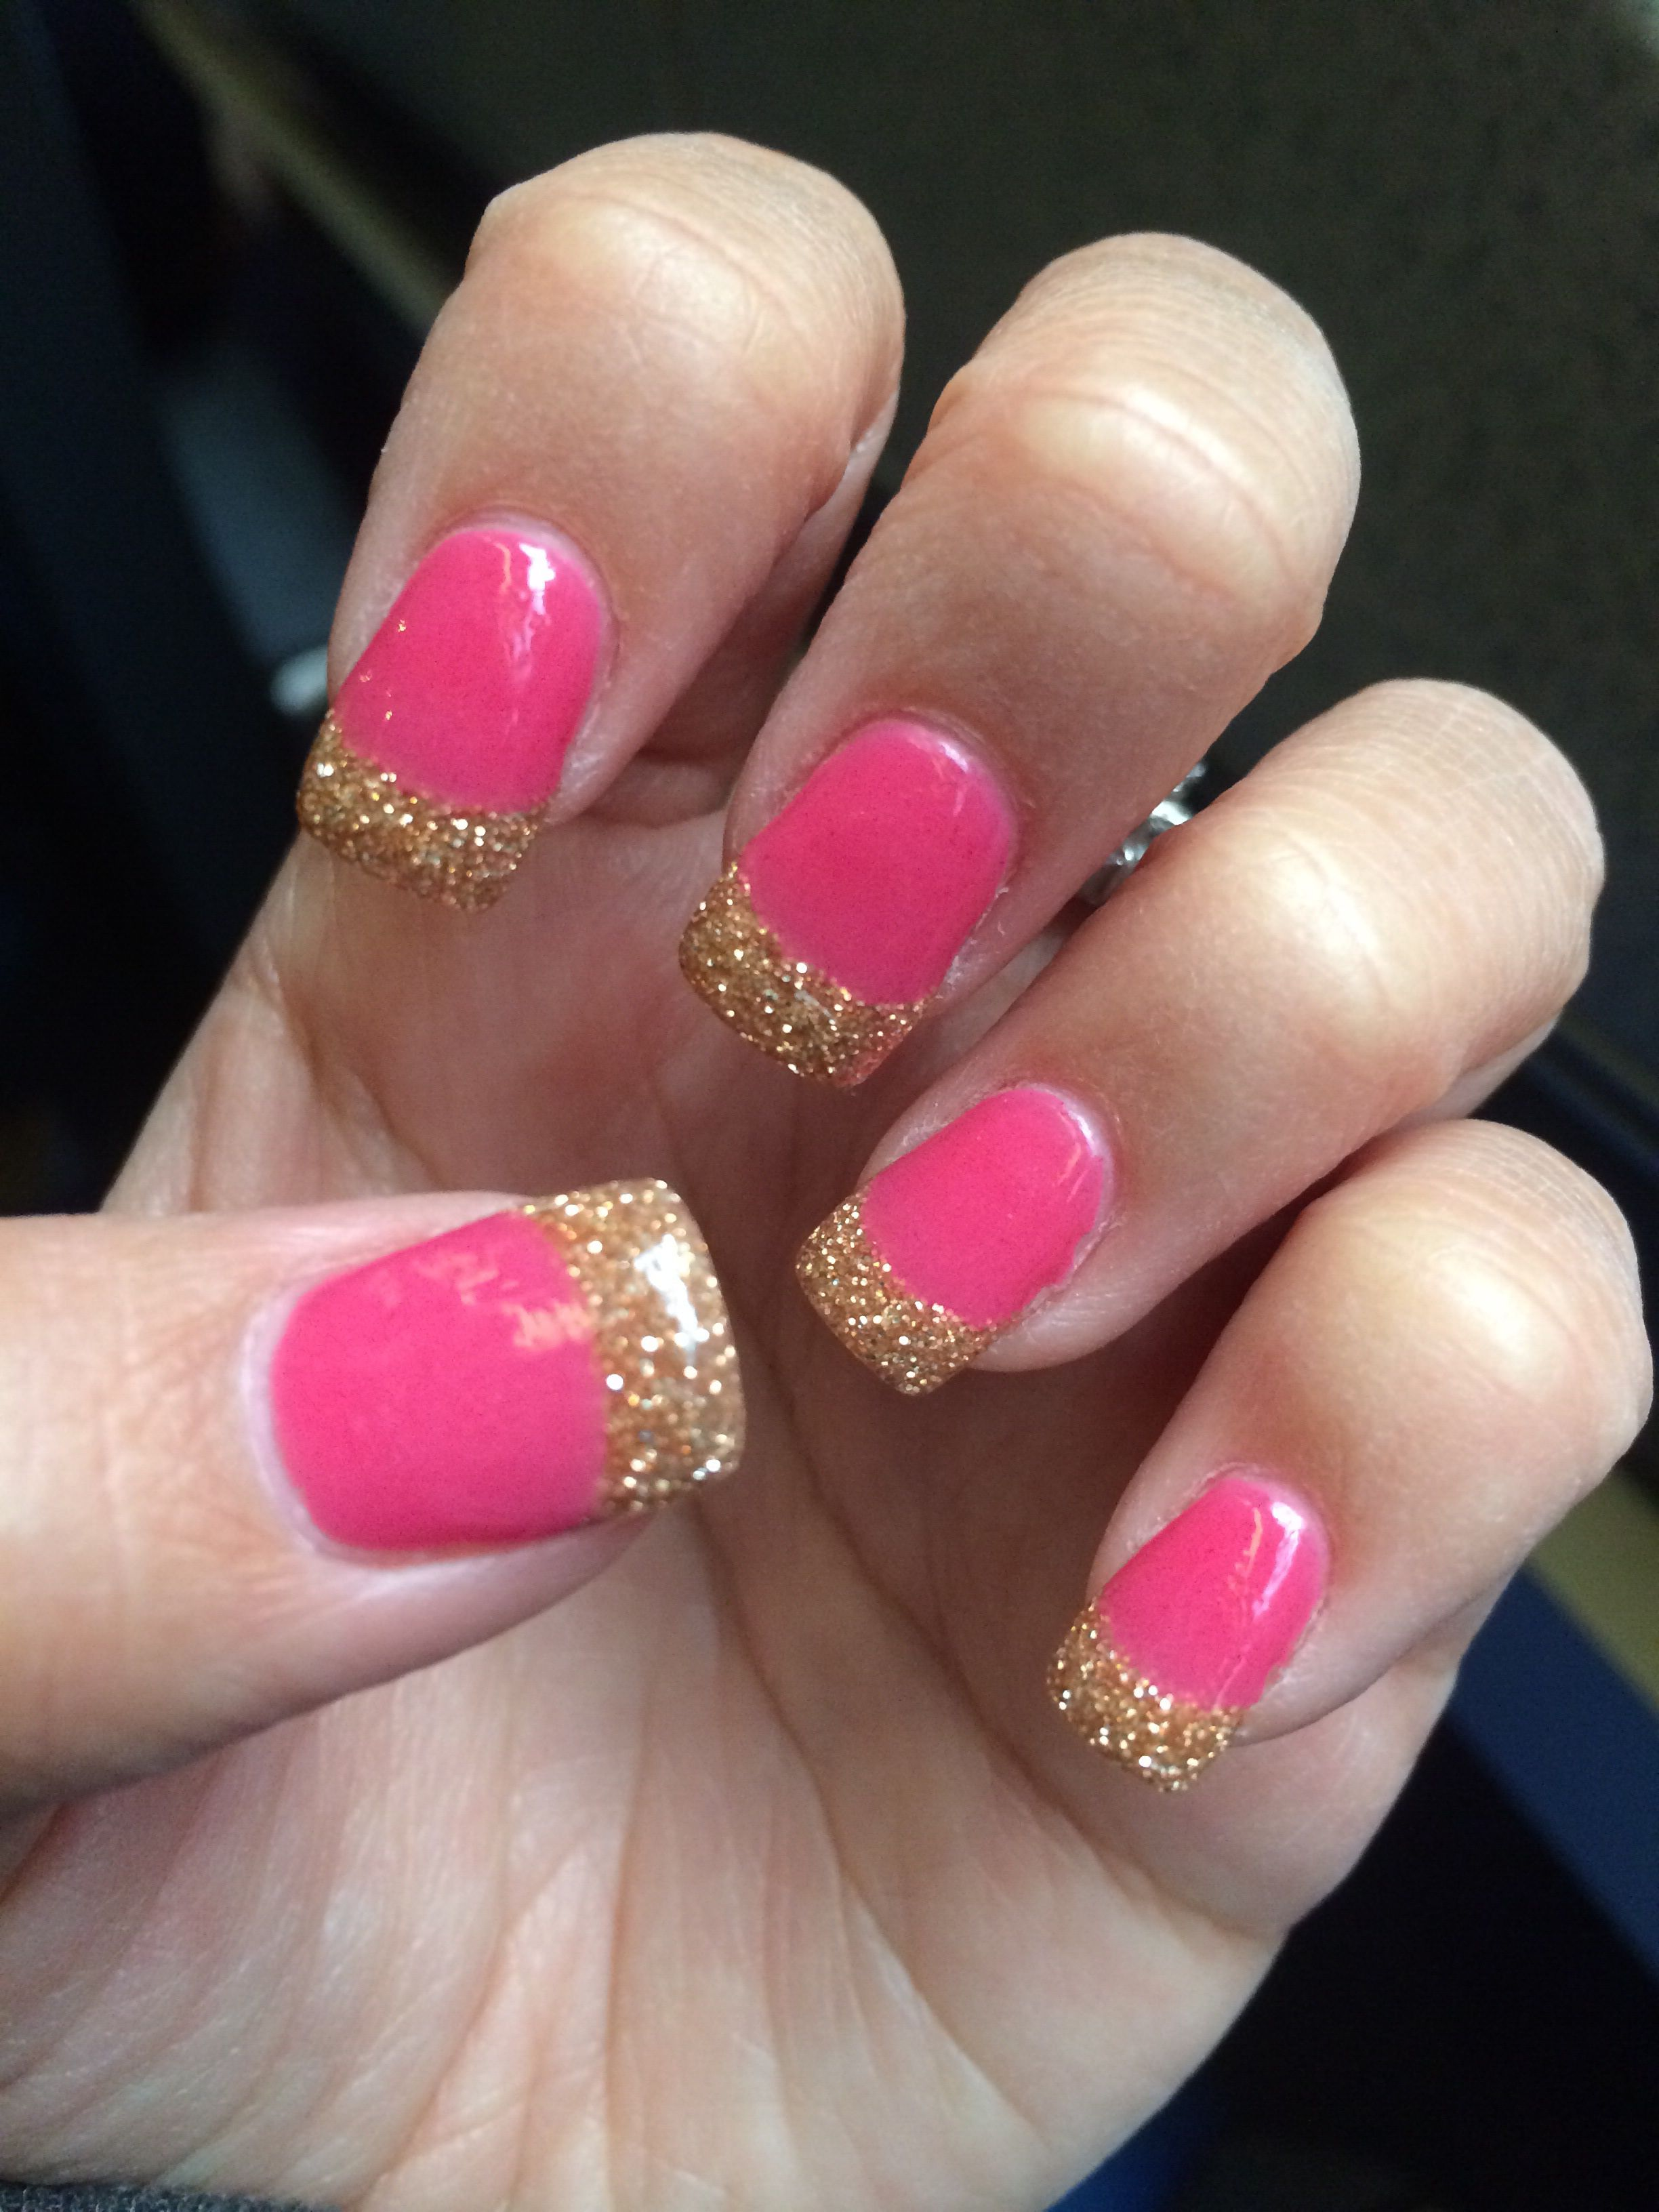 Nails-ANC Pink and Gold French manicure | Nails | Pinterest | Manicure